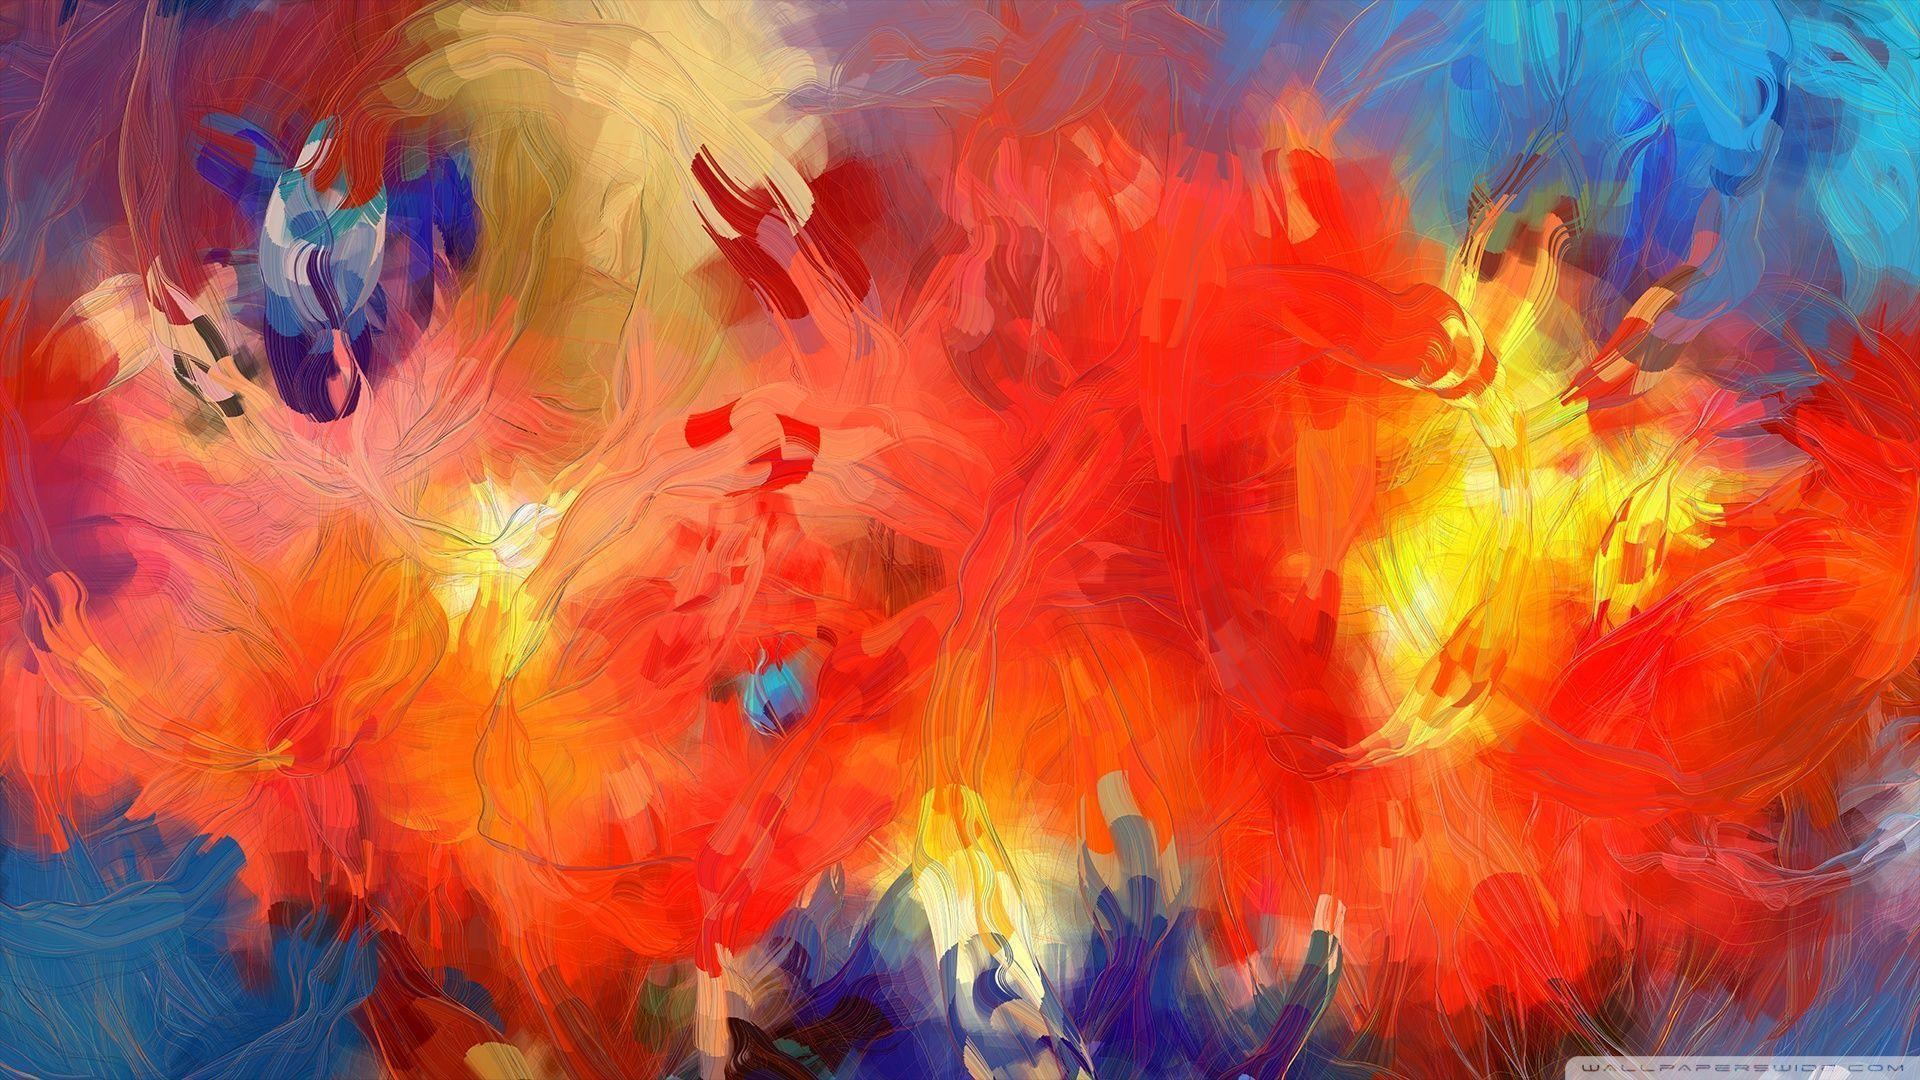 abstract art backgrounds - photo #1